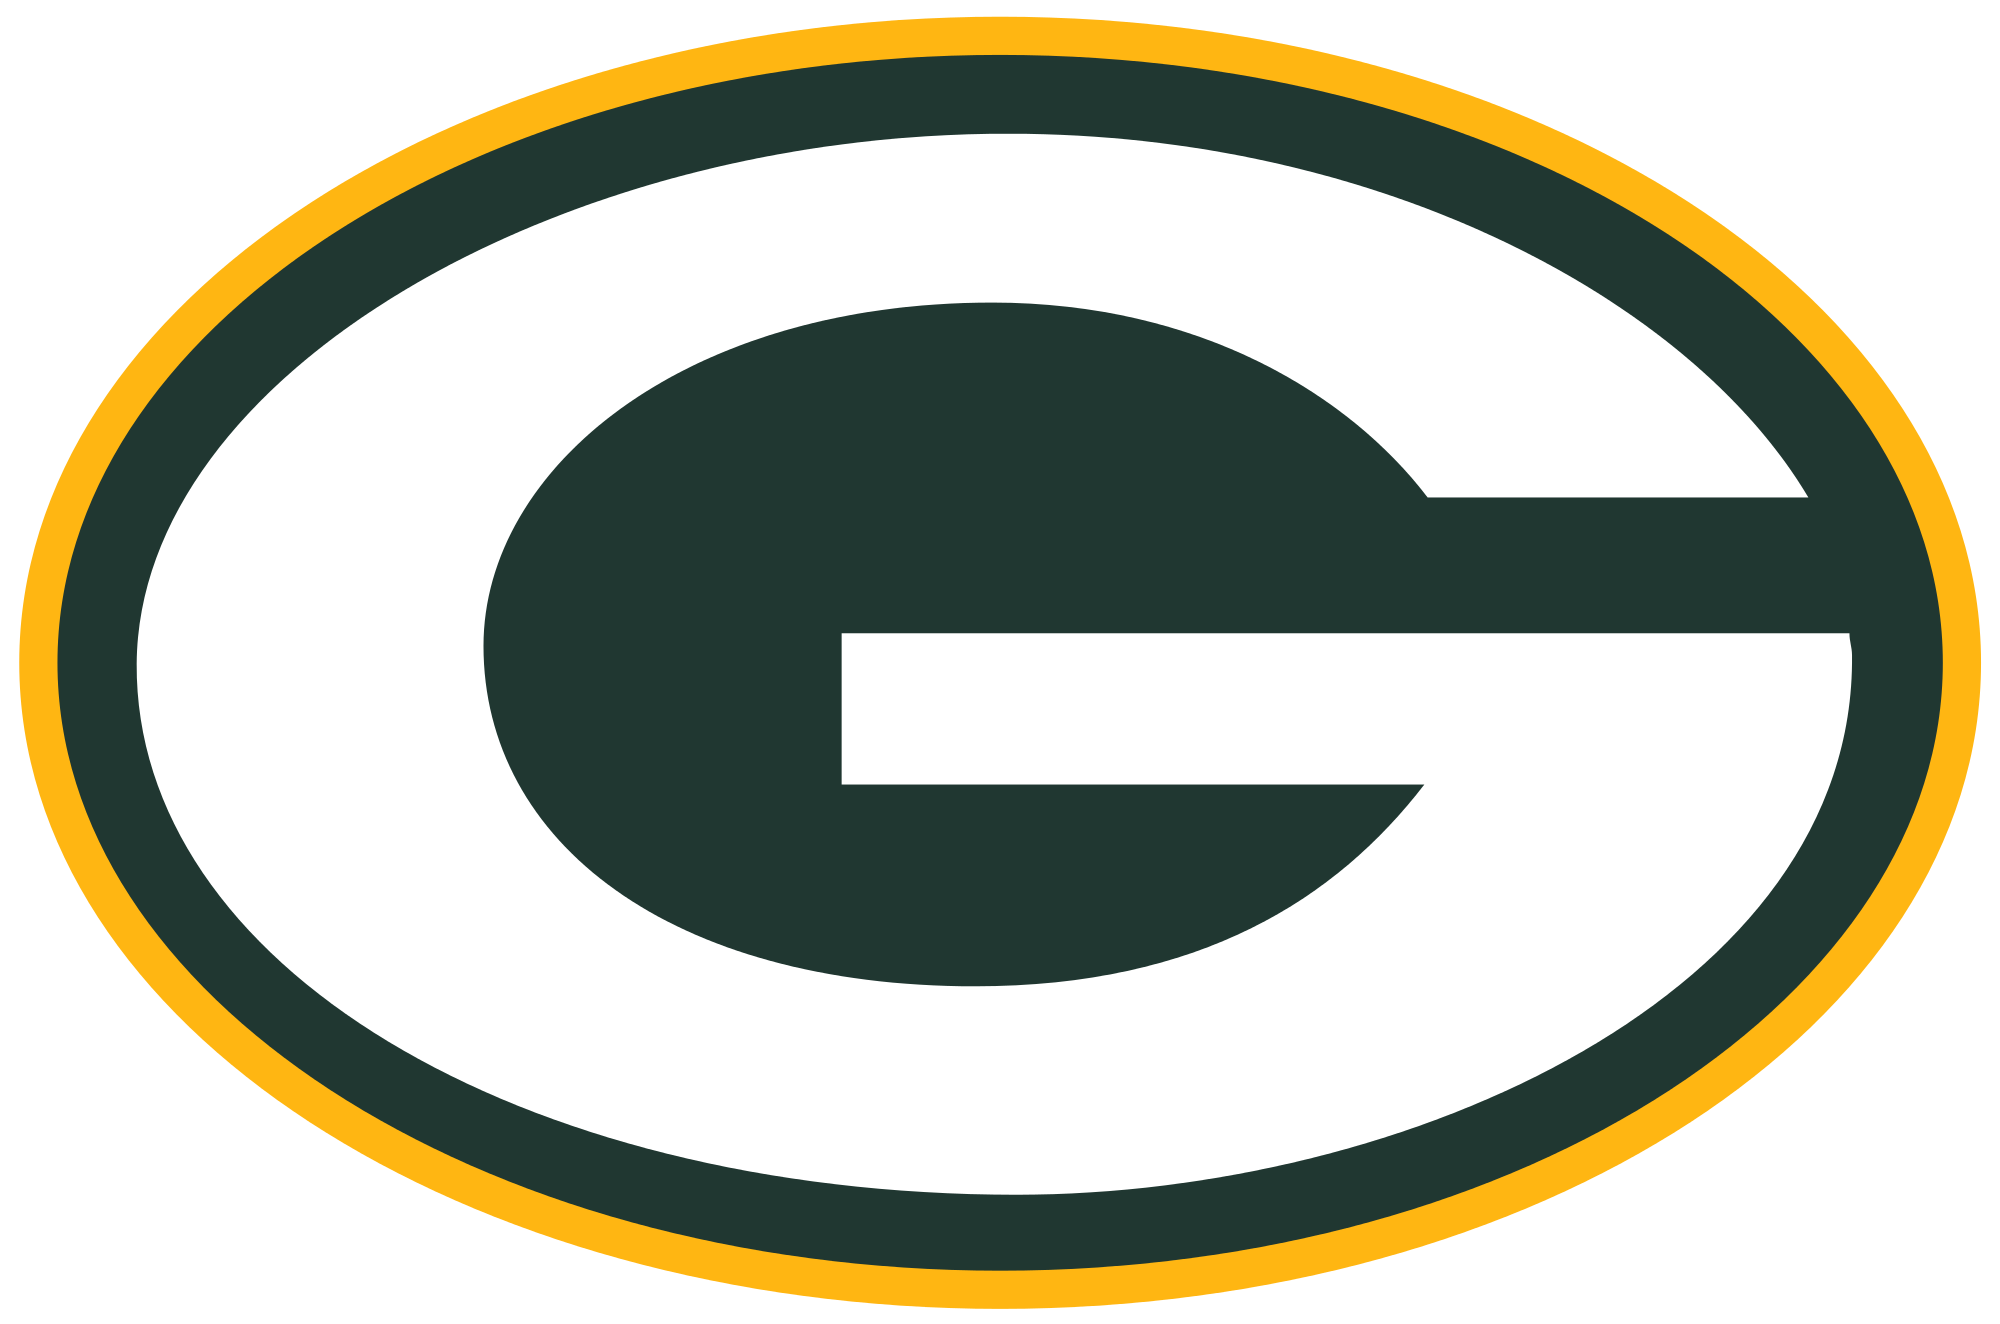 Kickers Outlasting Punters In Green Bay Door County Pulse